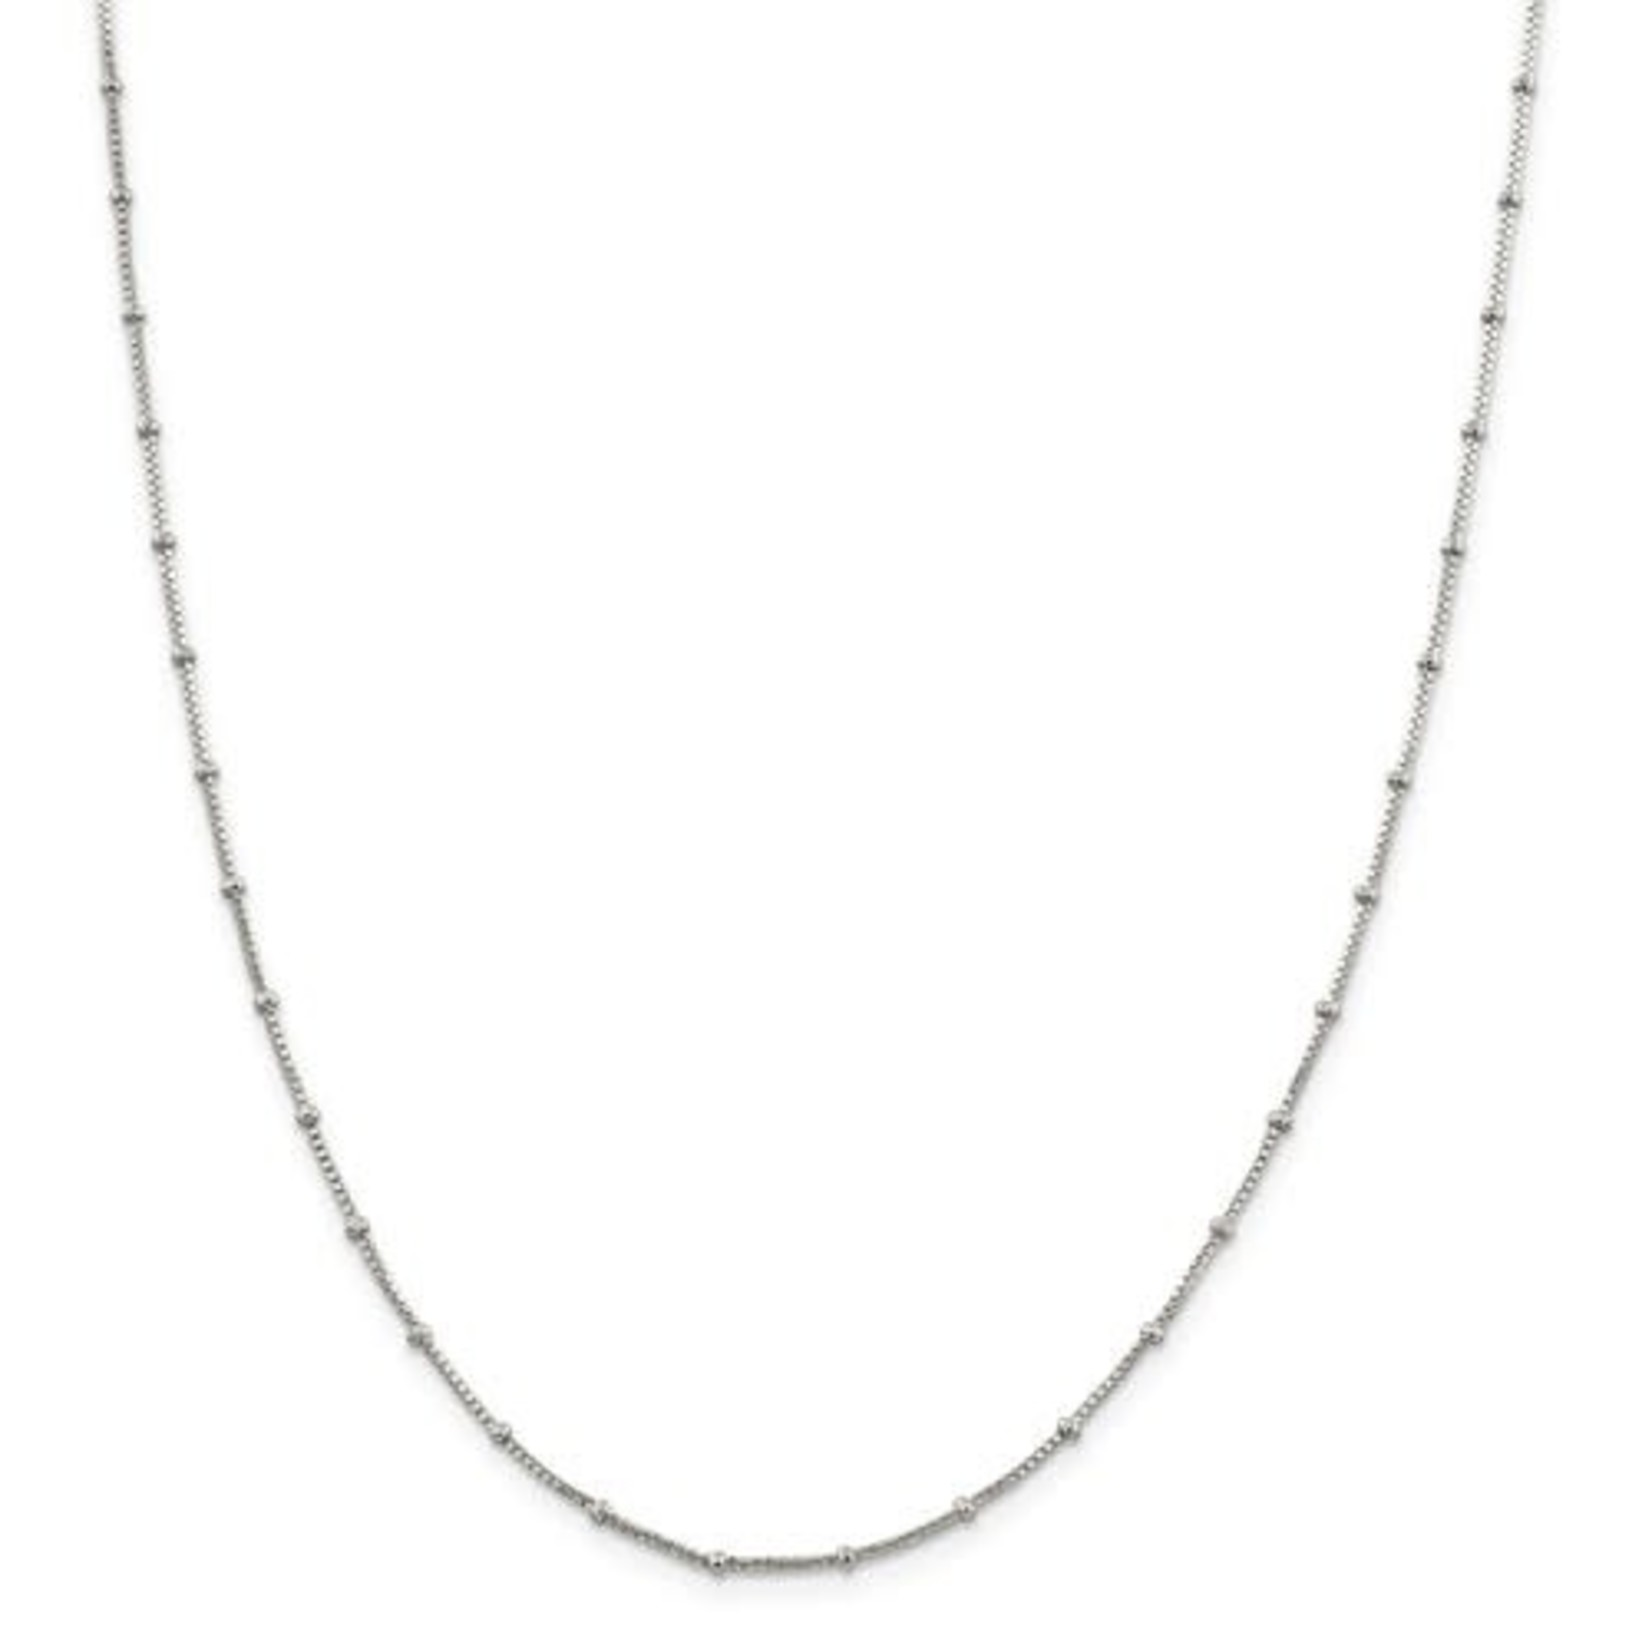 This Is Life Sterling Silver 1.25mm Beaded Box Chain